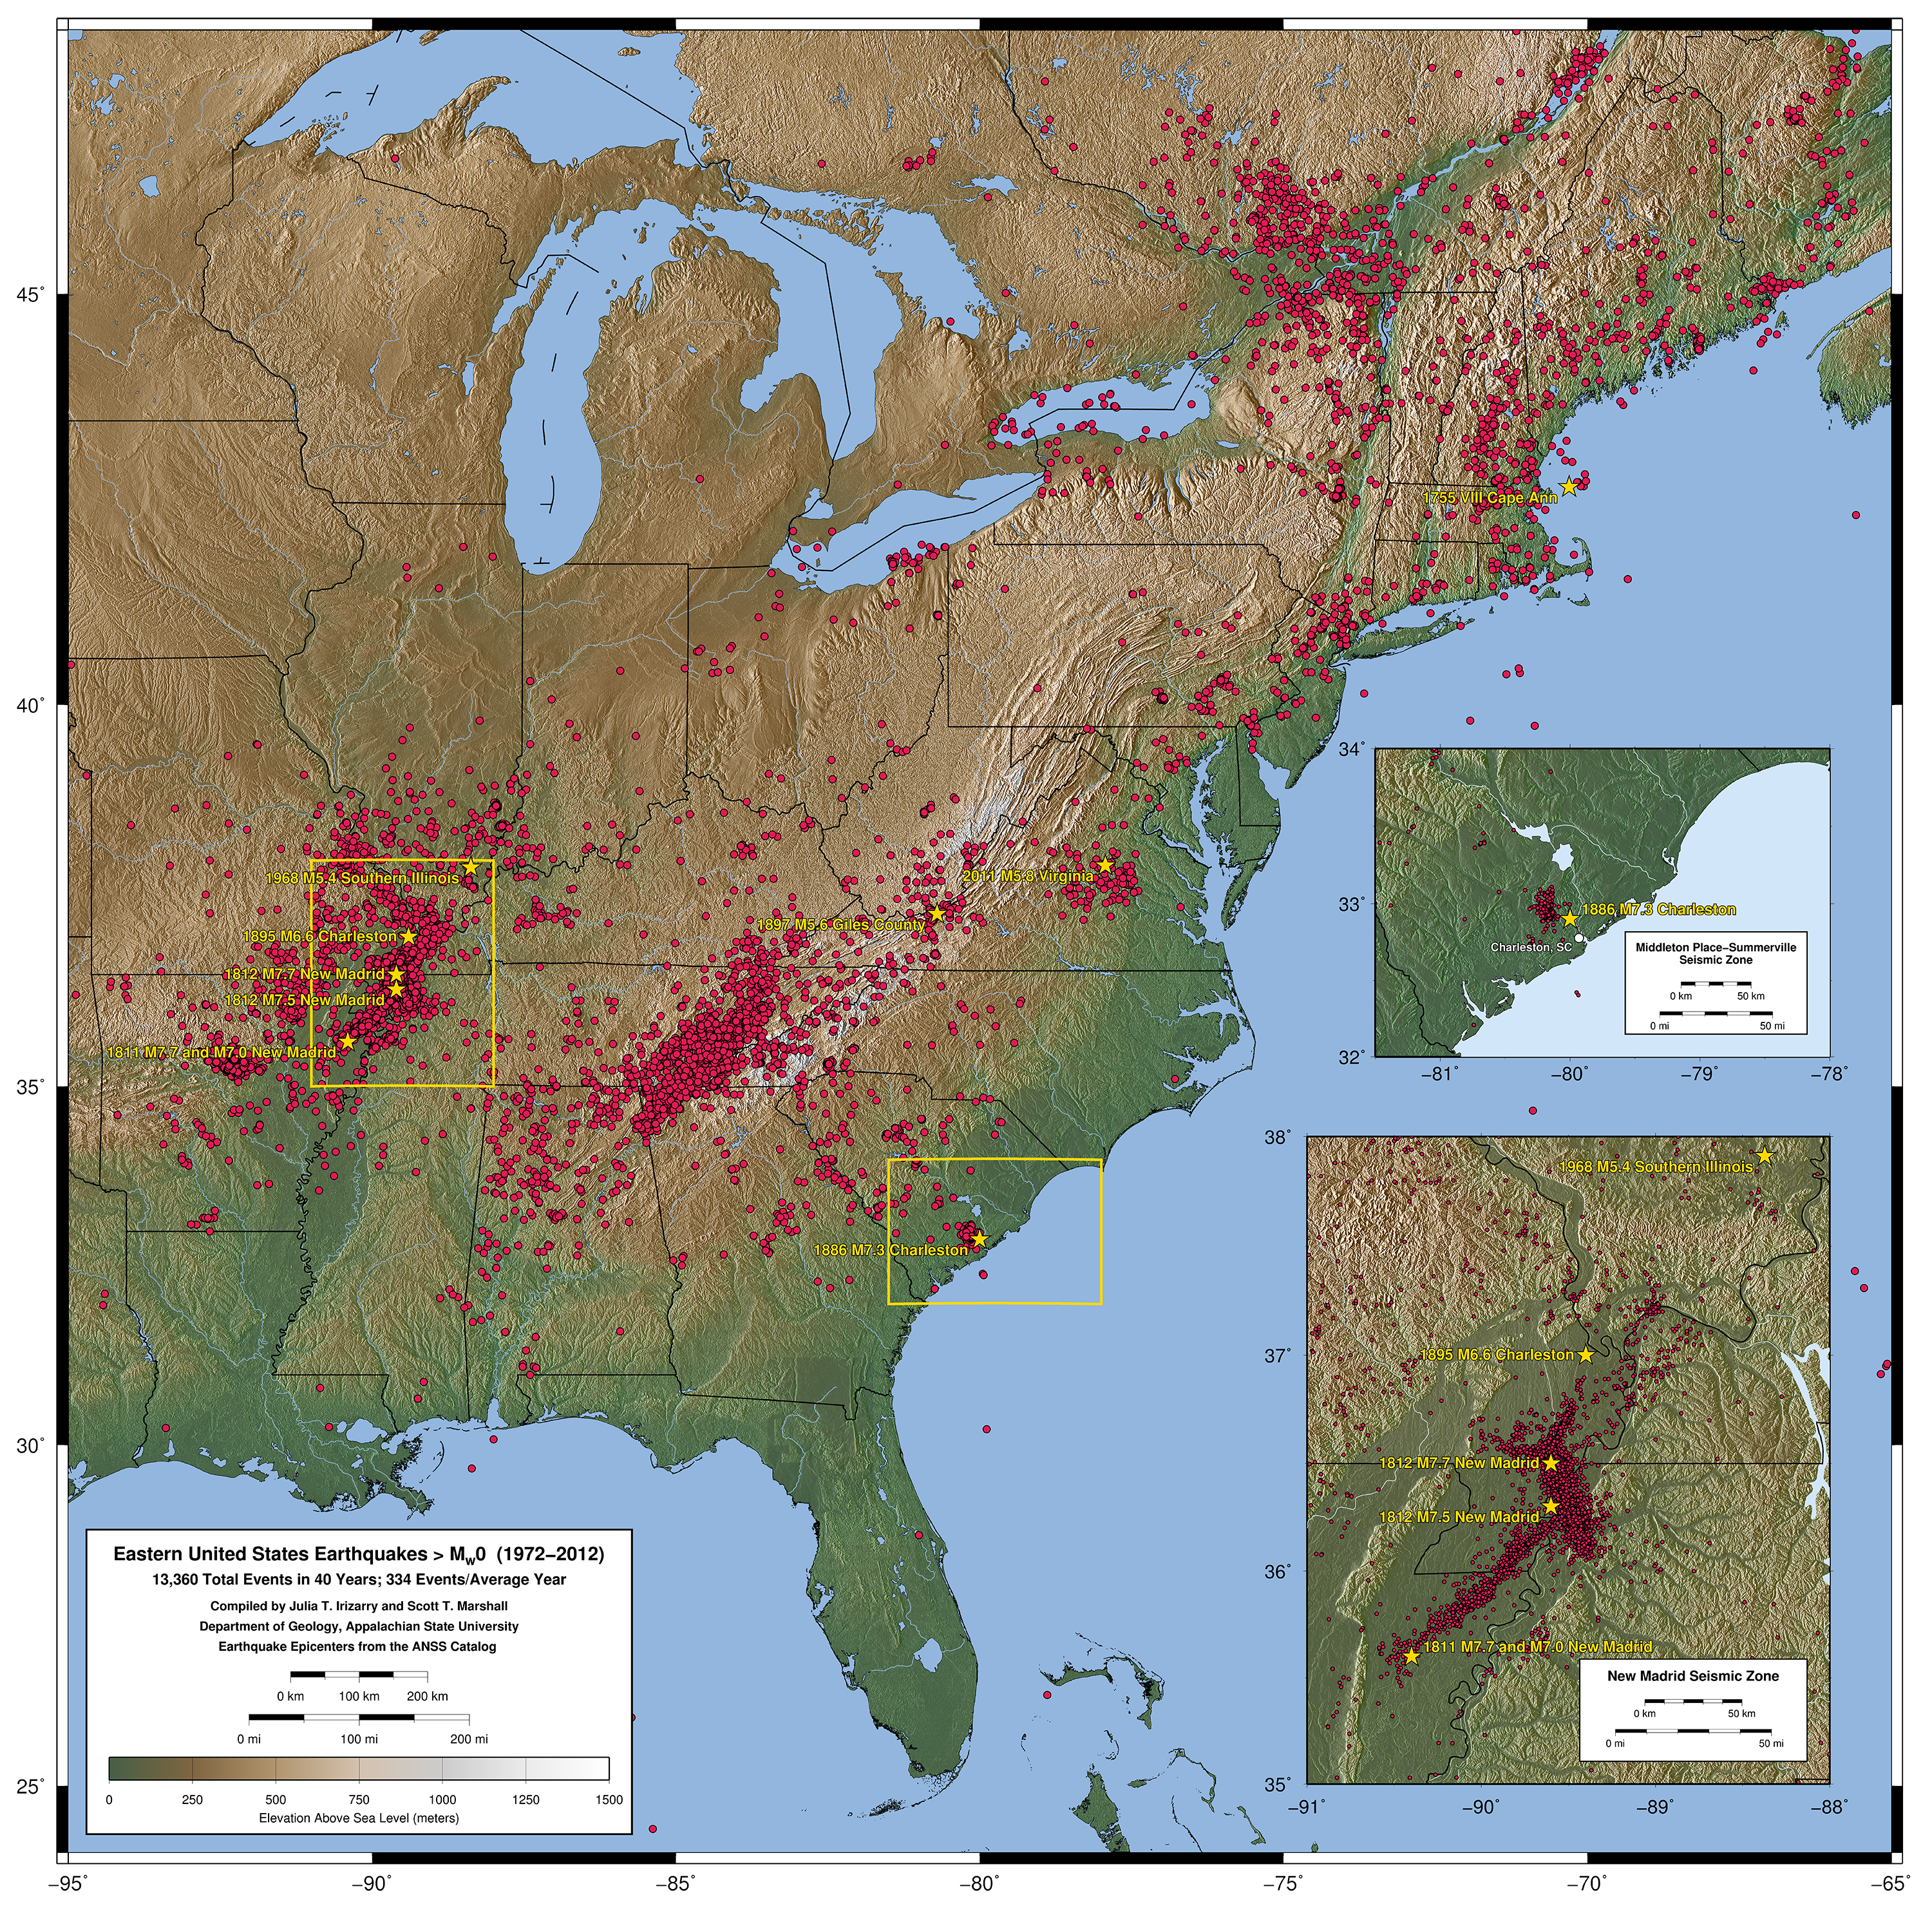 Maps Of Eastern United States Earthquakes From 1972 2012